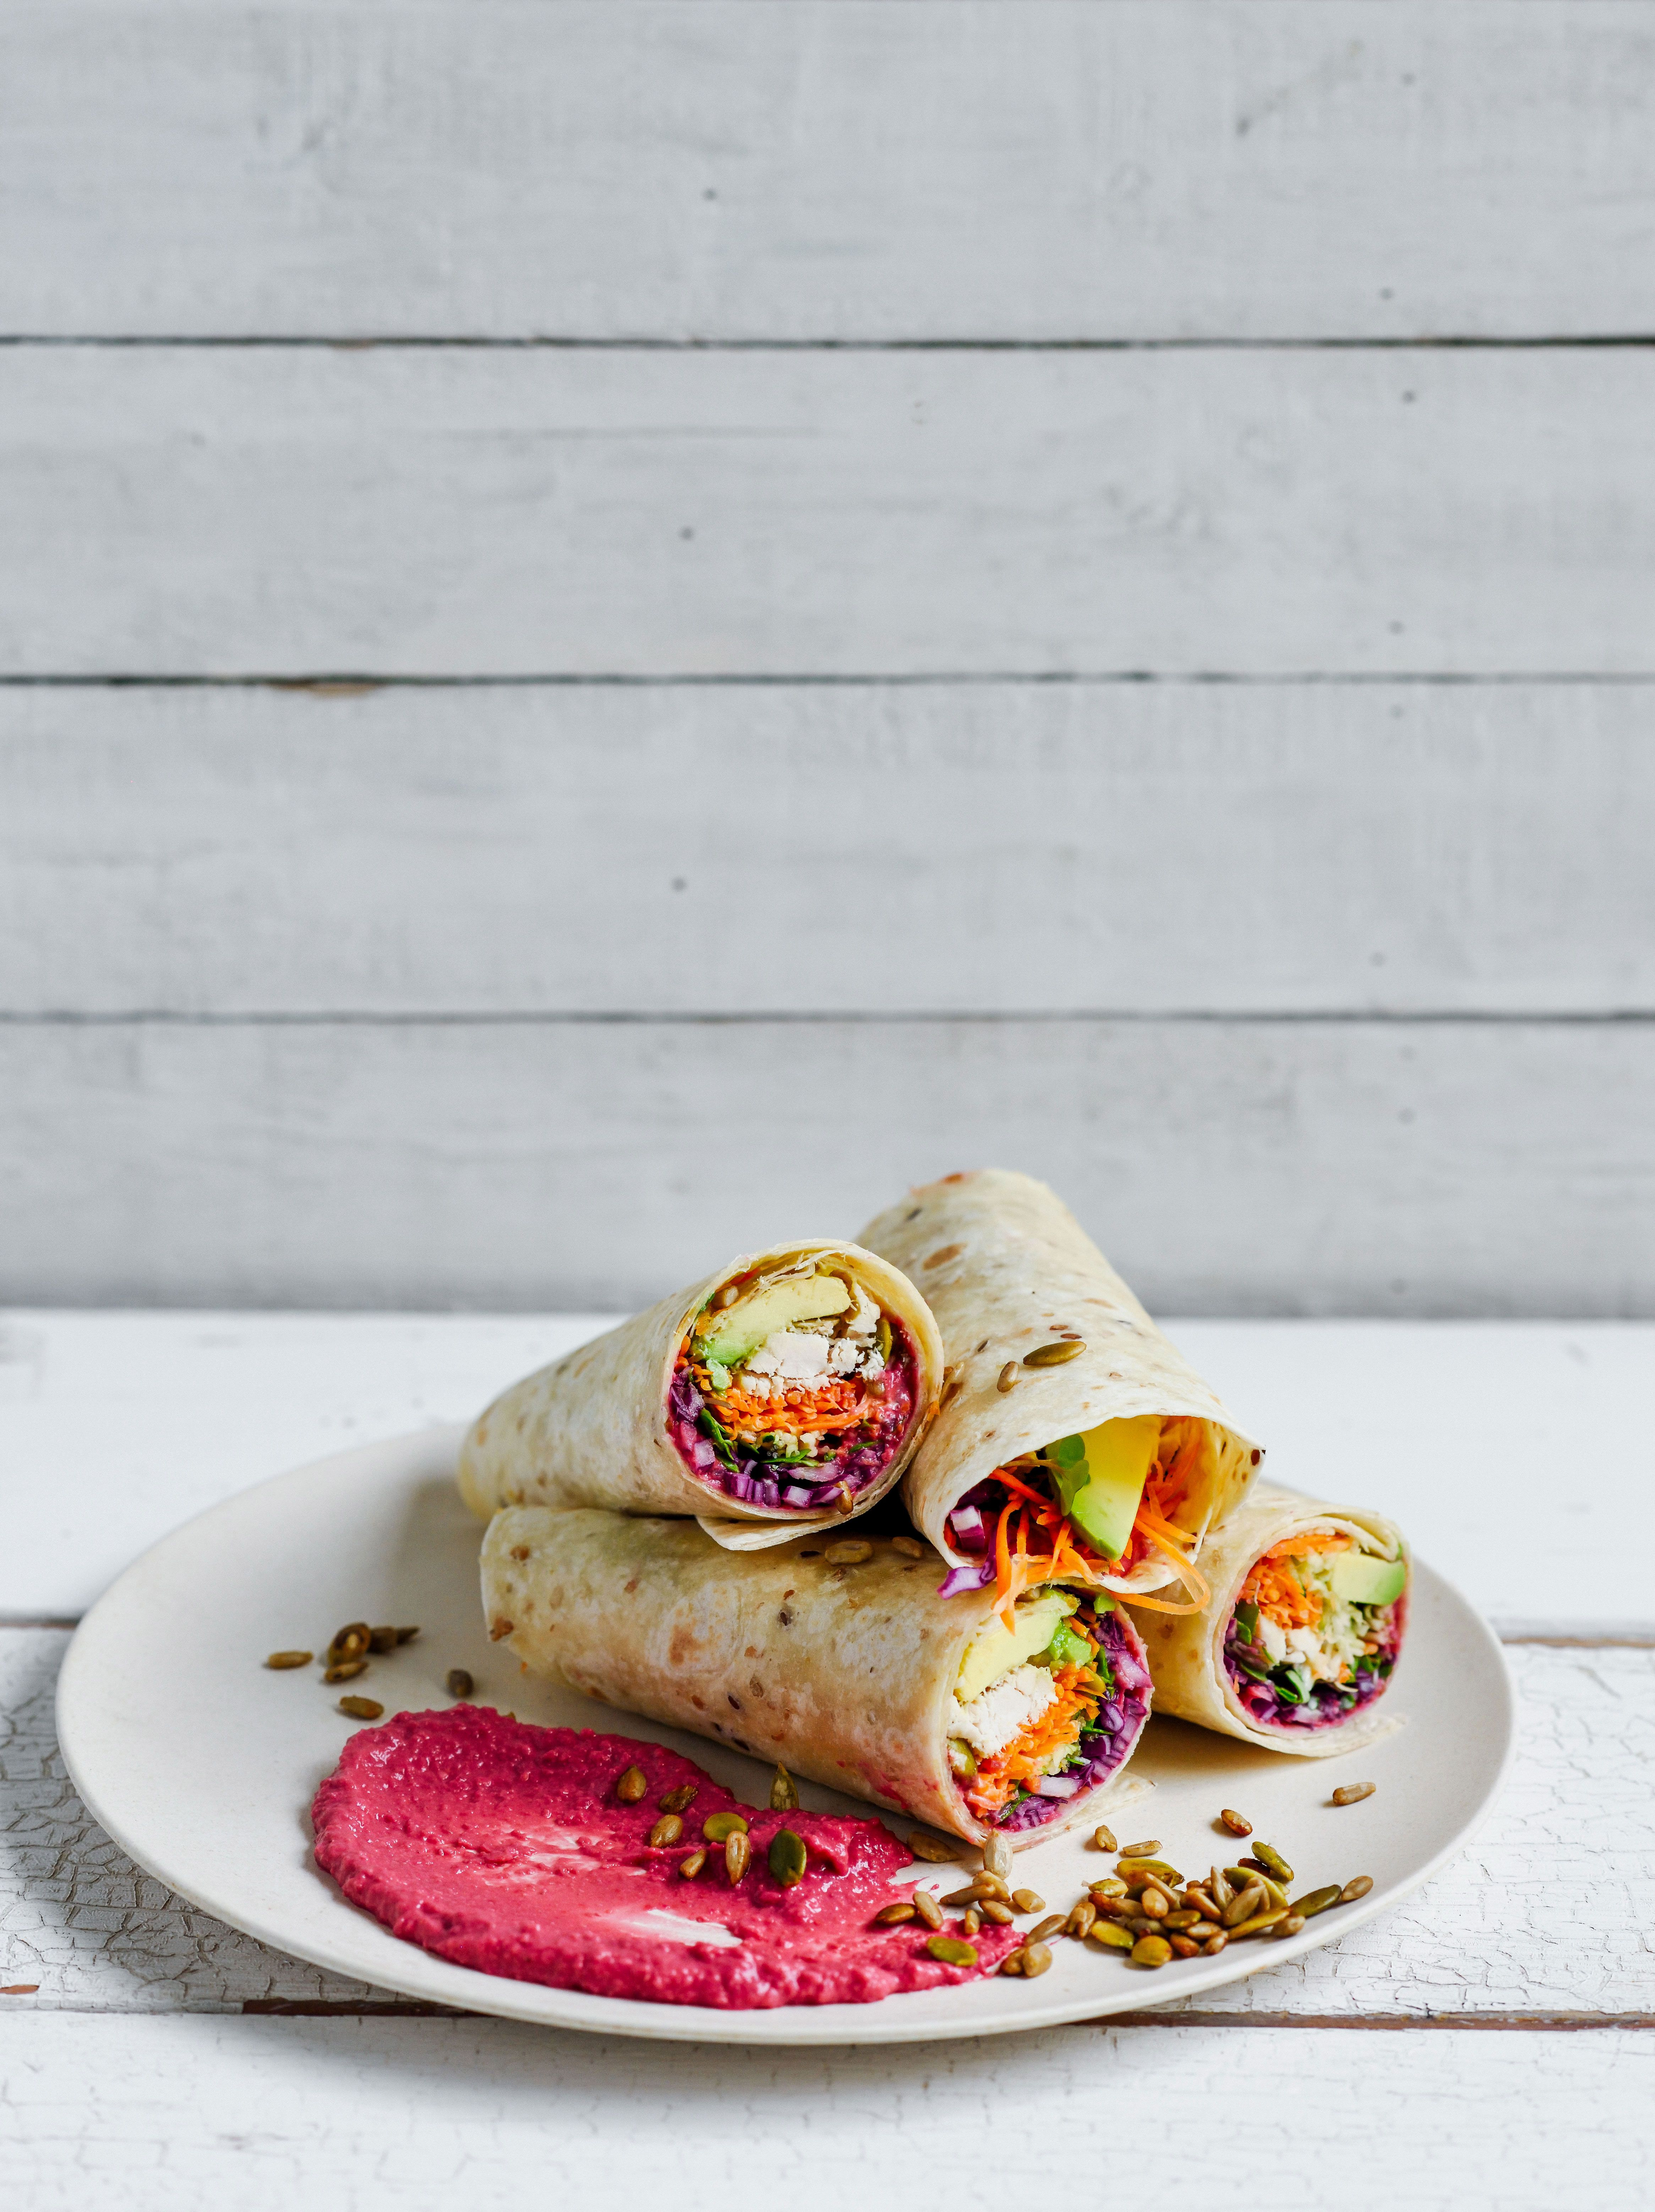 rainbow wraps – Stuck in the kitchen | Food photography | Pinterest ...